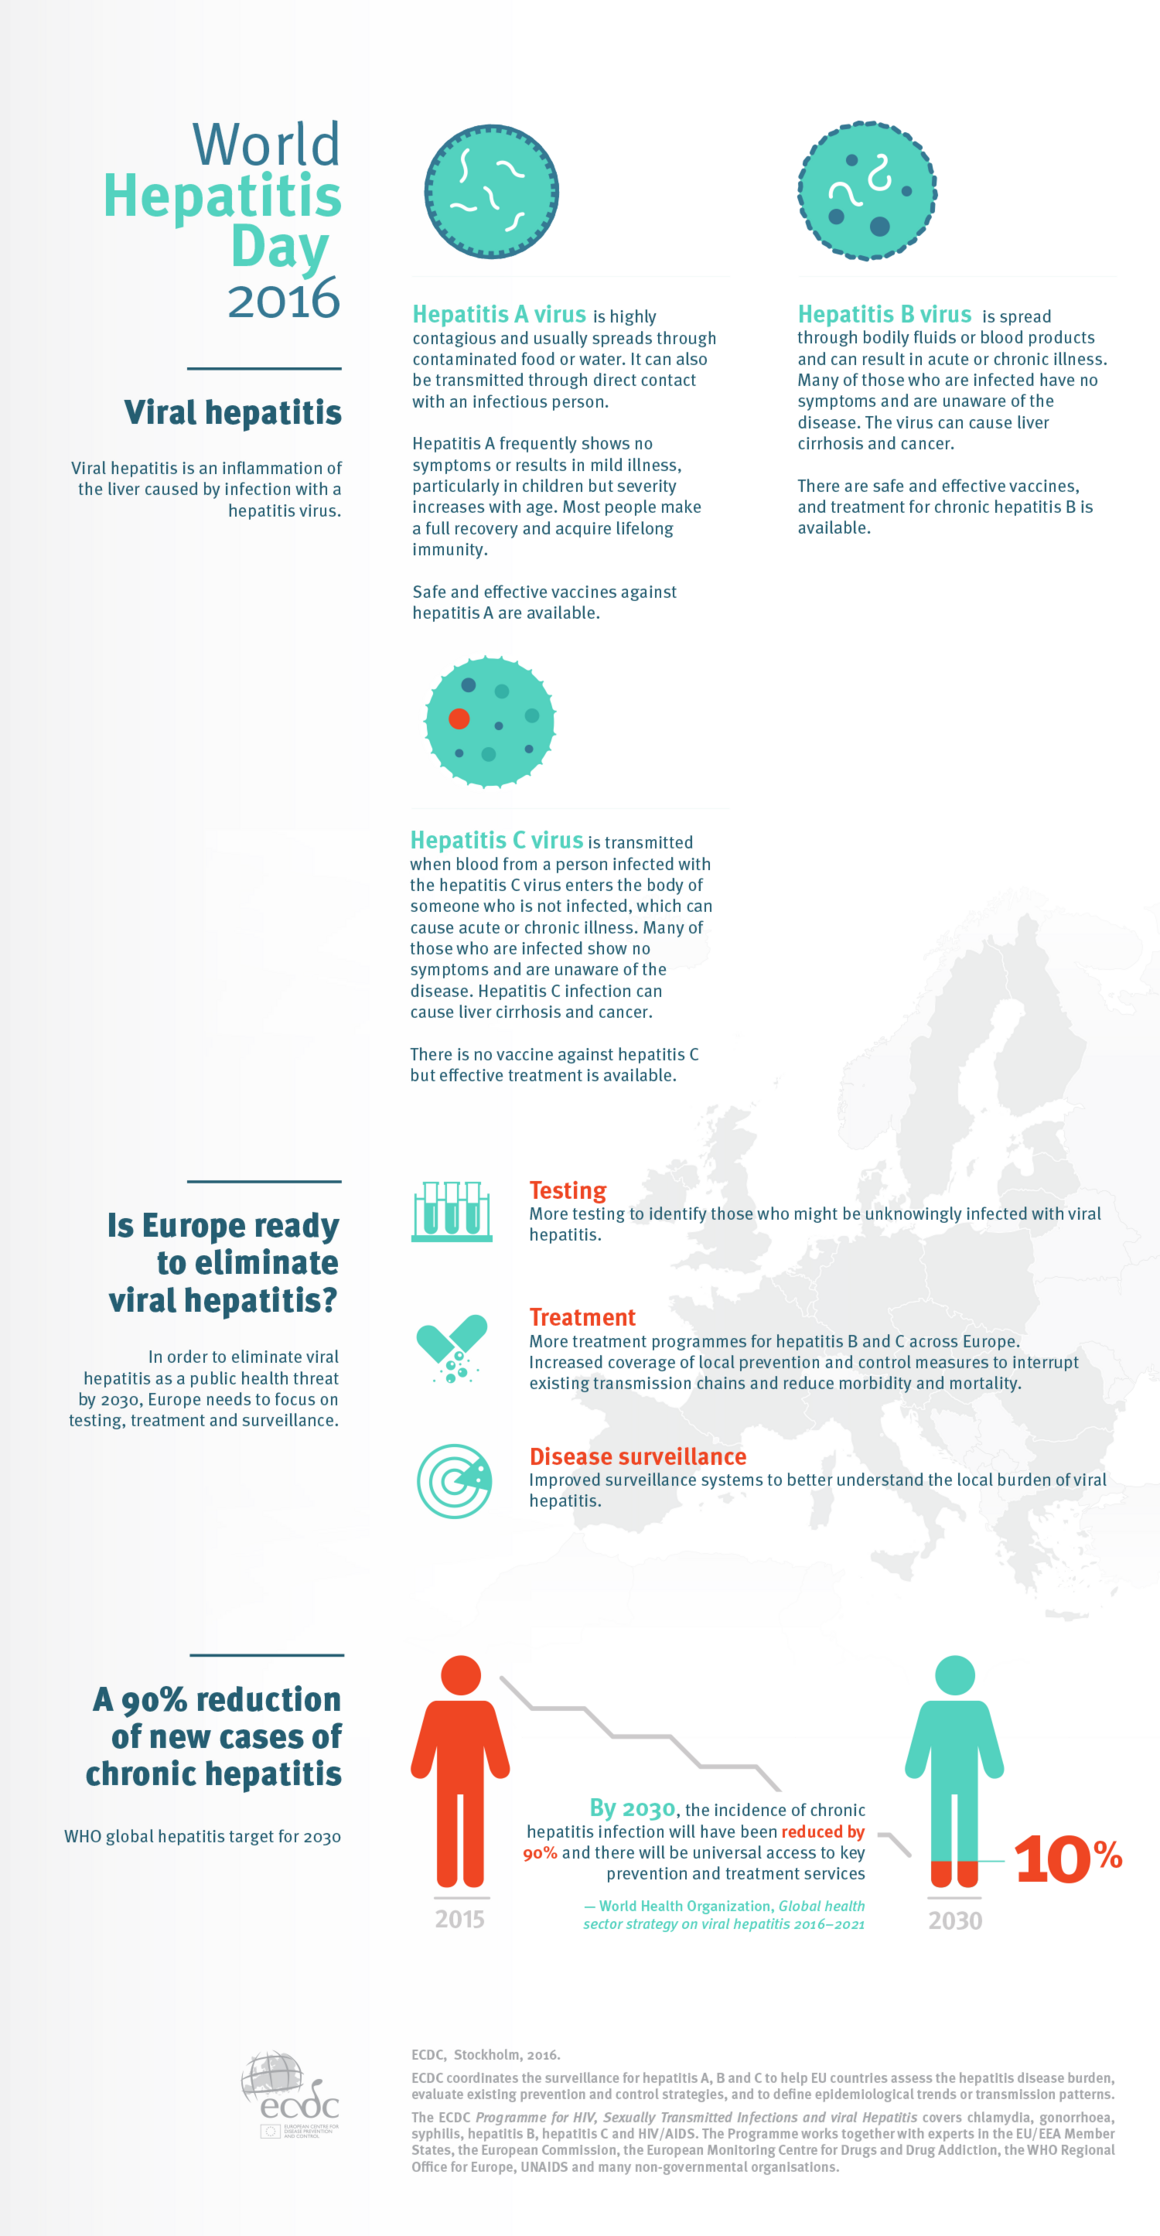 Infographic explaining viral hepatitis and Europe's goal to eliminate it as a public health threat